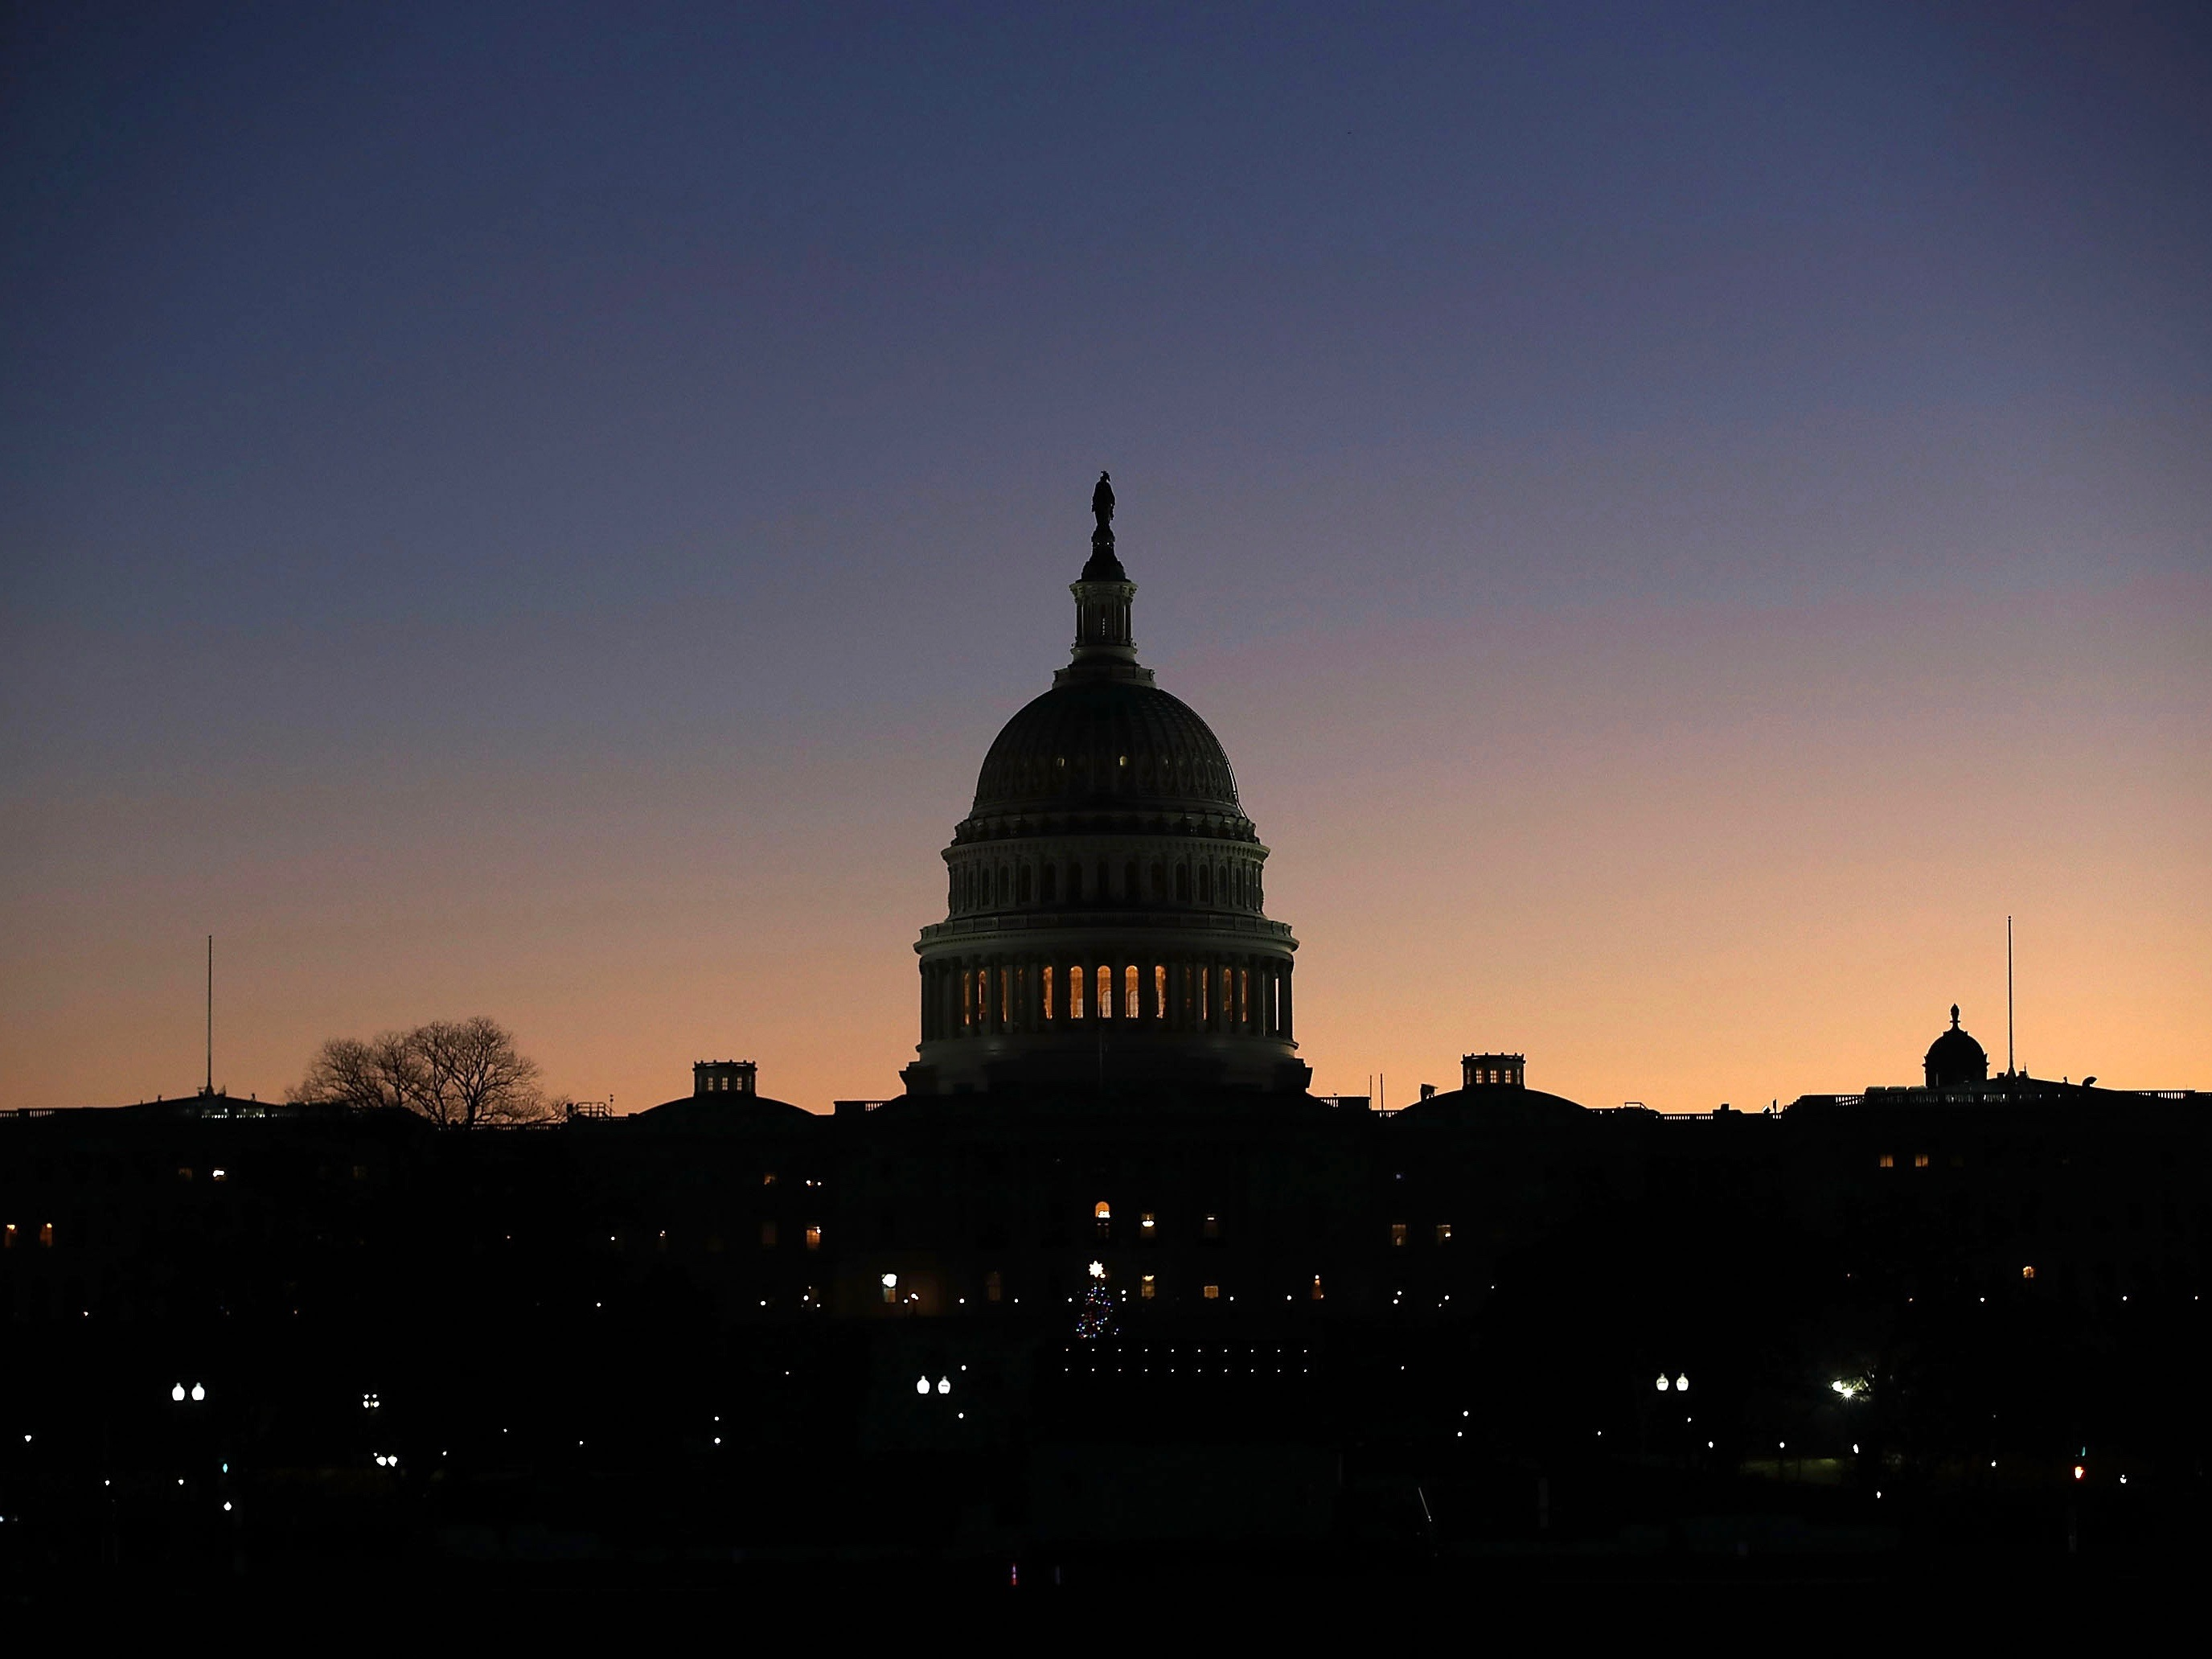 Amid Democratic Opposition, House GOP Works To Avert Government Shutdown